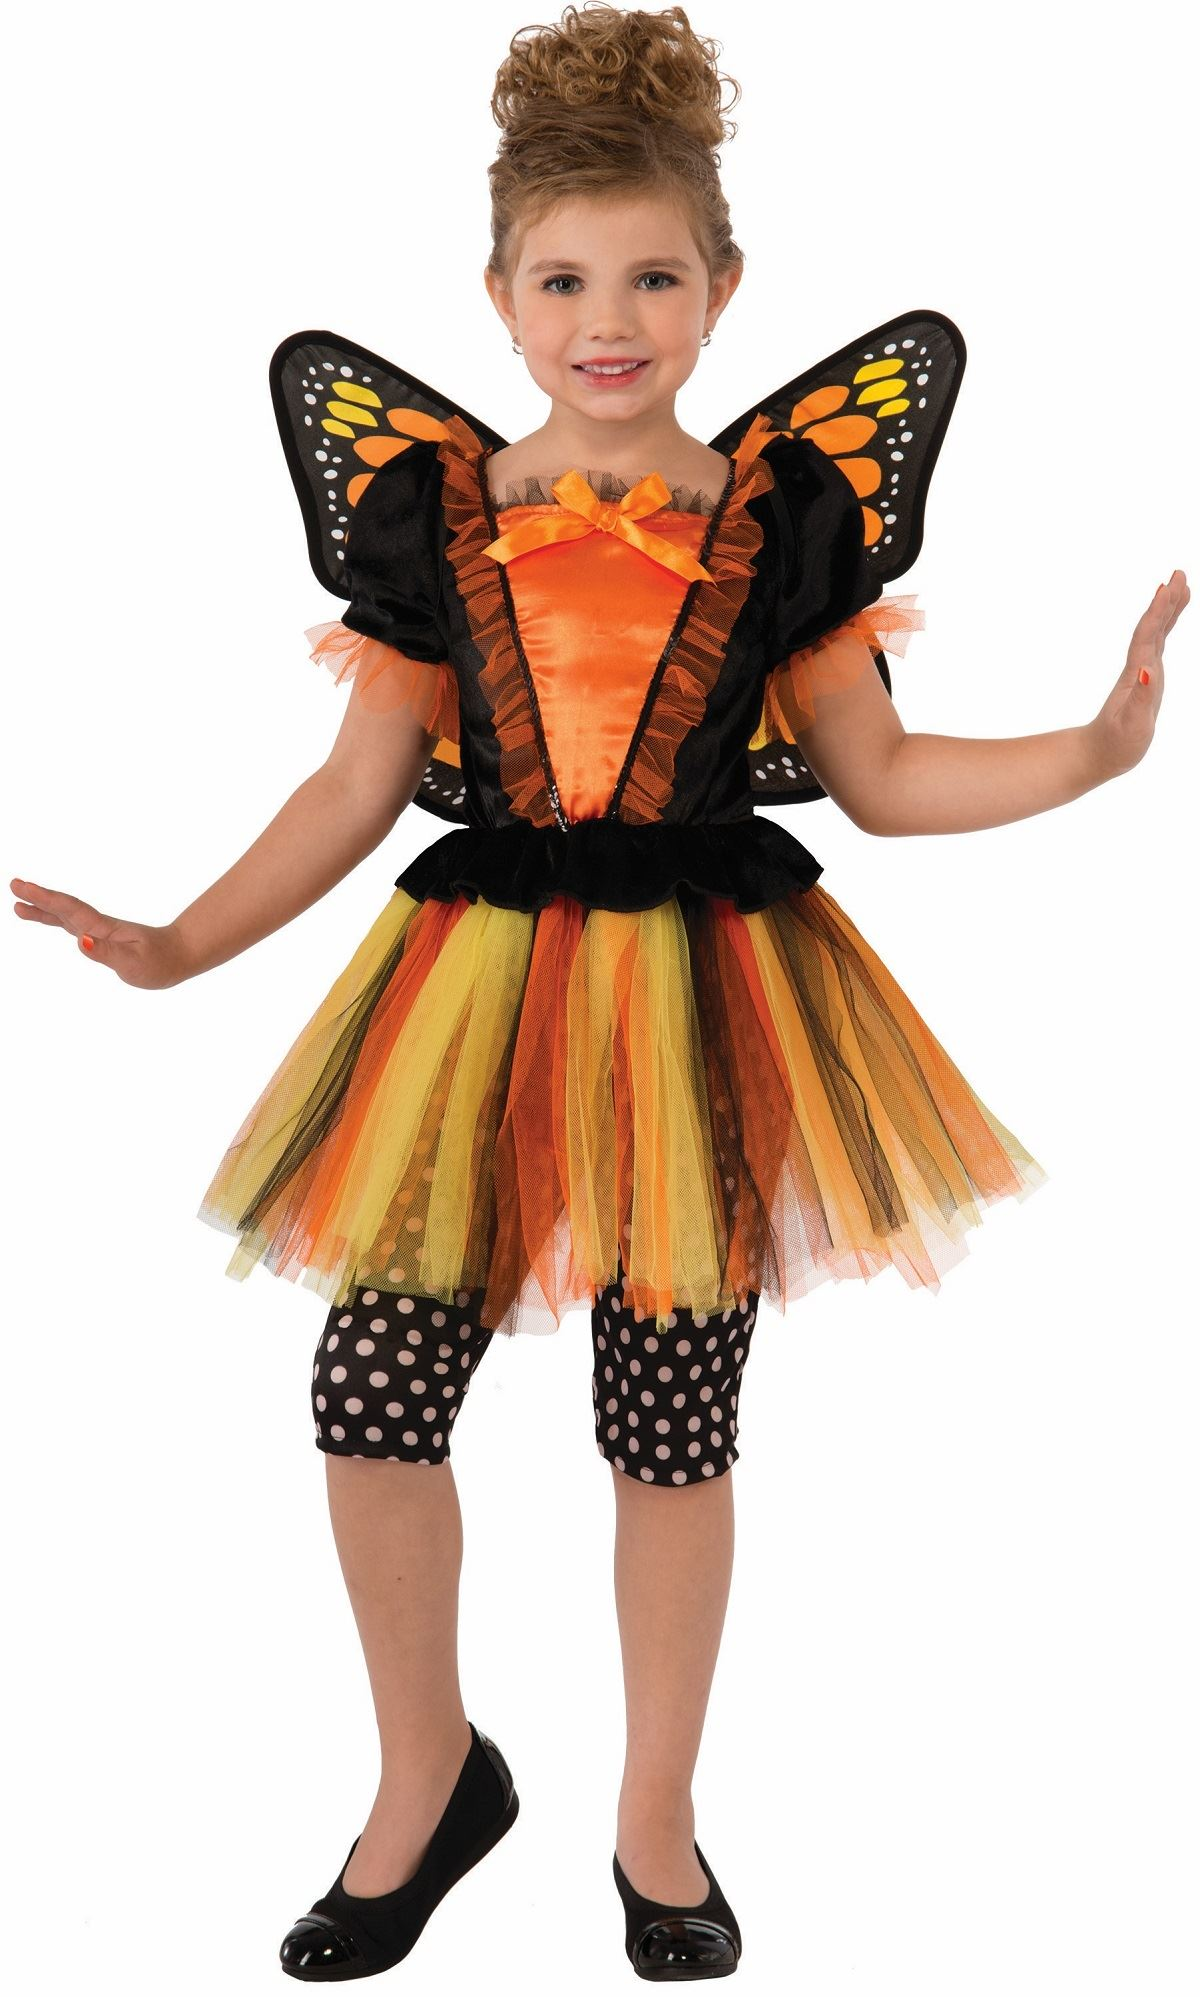 Kids Monarch Girls Butterfly Costume | $30.99 | The Costume Land